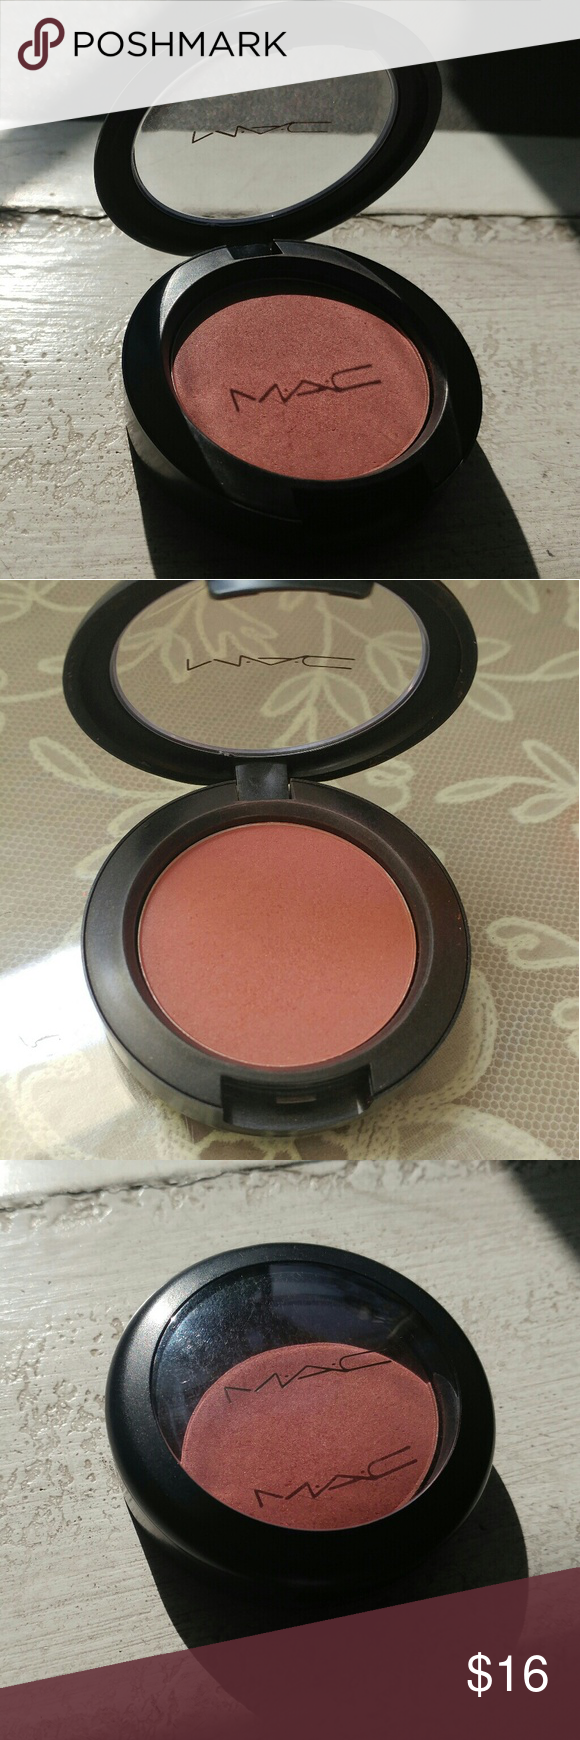 """MAC make you mine blush Mac pro blusher in the shade """"Make you Mine."""" Beautiful, highly pigmented color. Only used a couple times. Authentic. MAC Cosmetics Makeup Blush"""